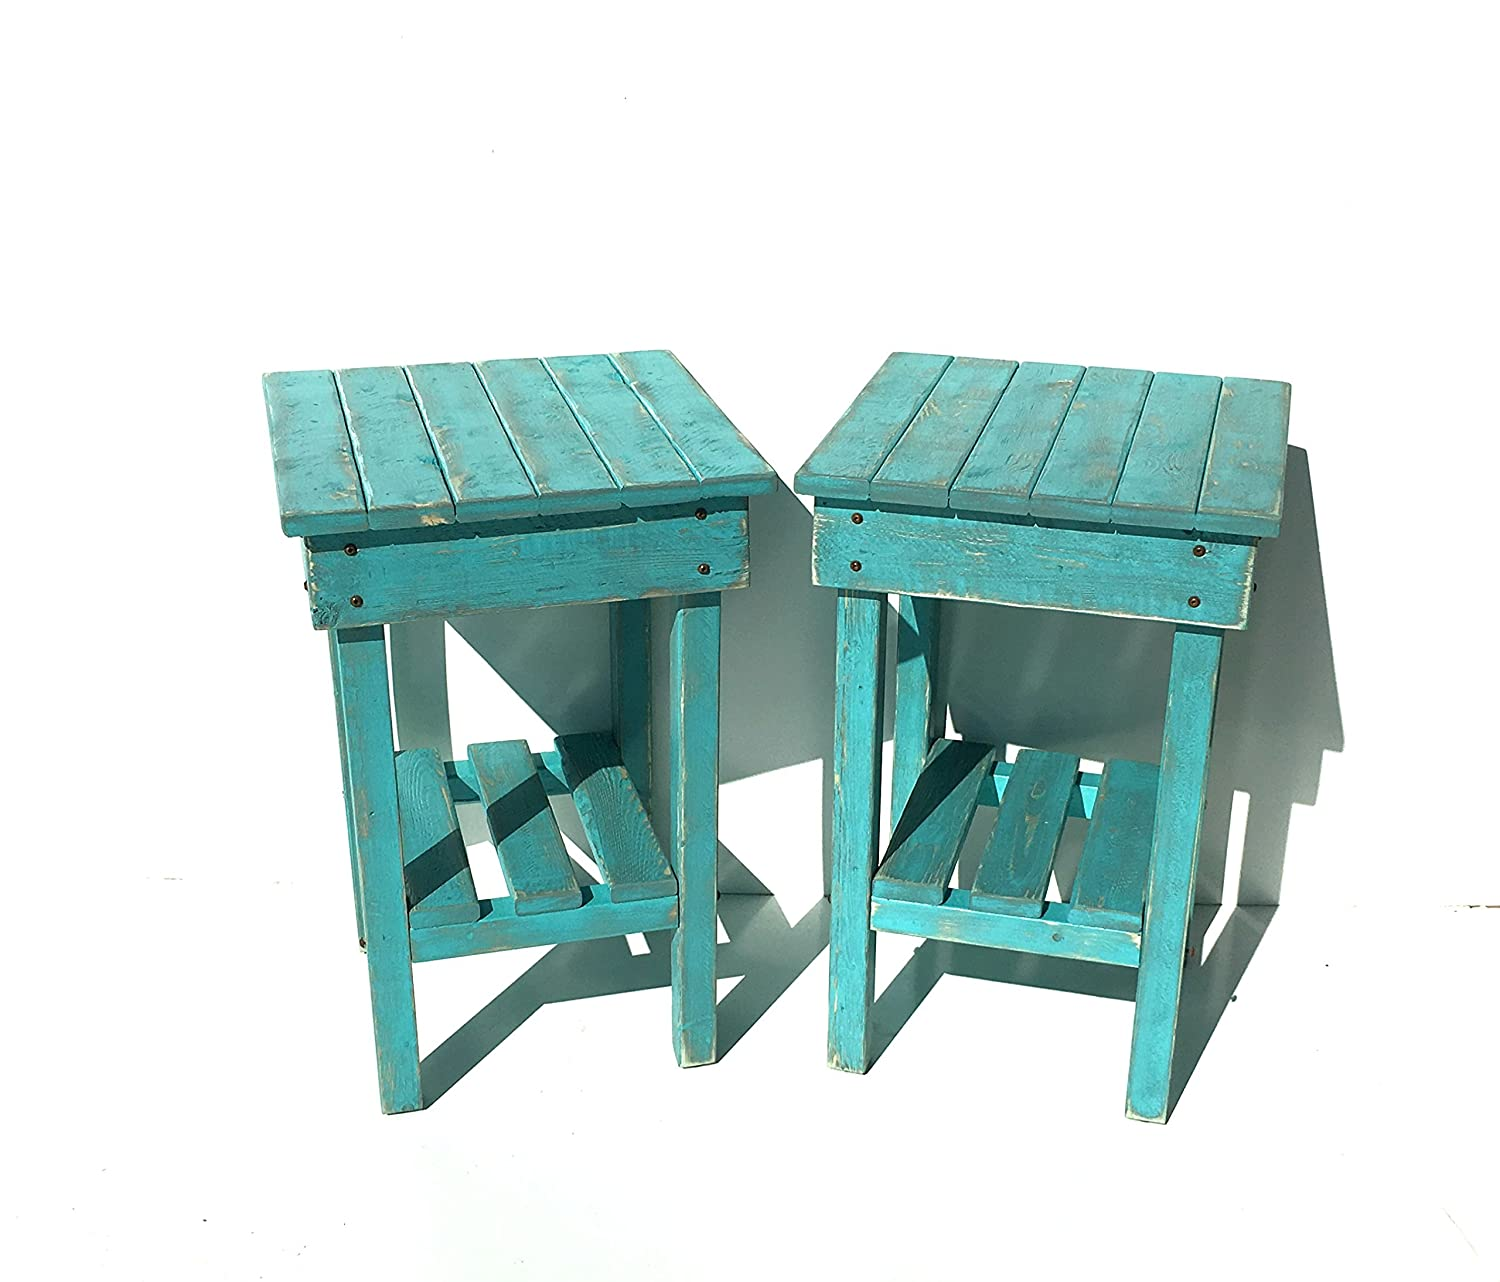 separation shoes 765e1 8b4e6 Distressed Night Stand Set /Turquoise Distressed End Table Set /Bed Side  Tables/Rustic Table/Farmhouse Side Table/Vintage/Wooden Table